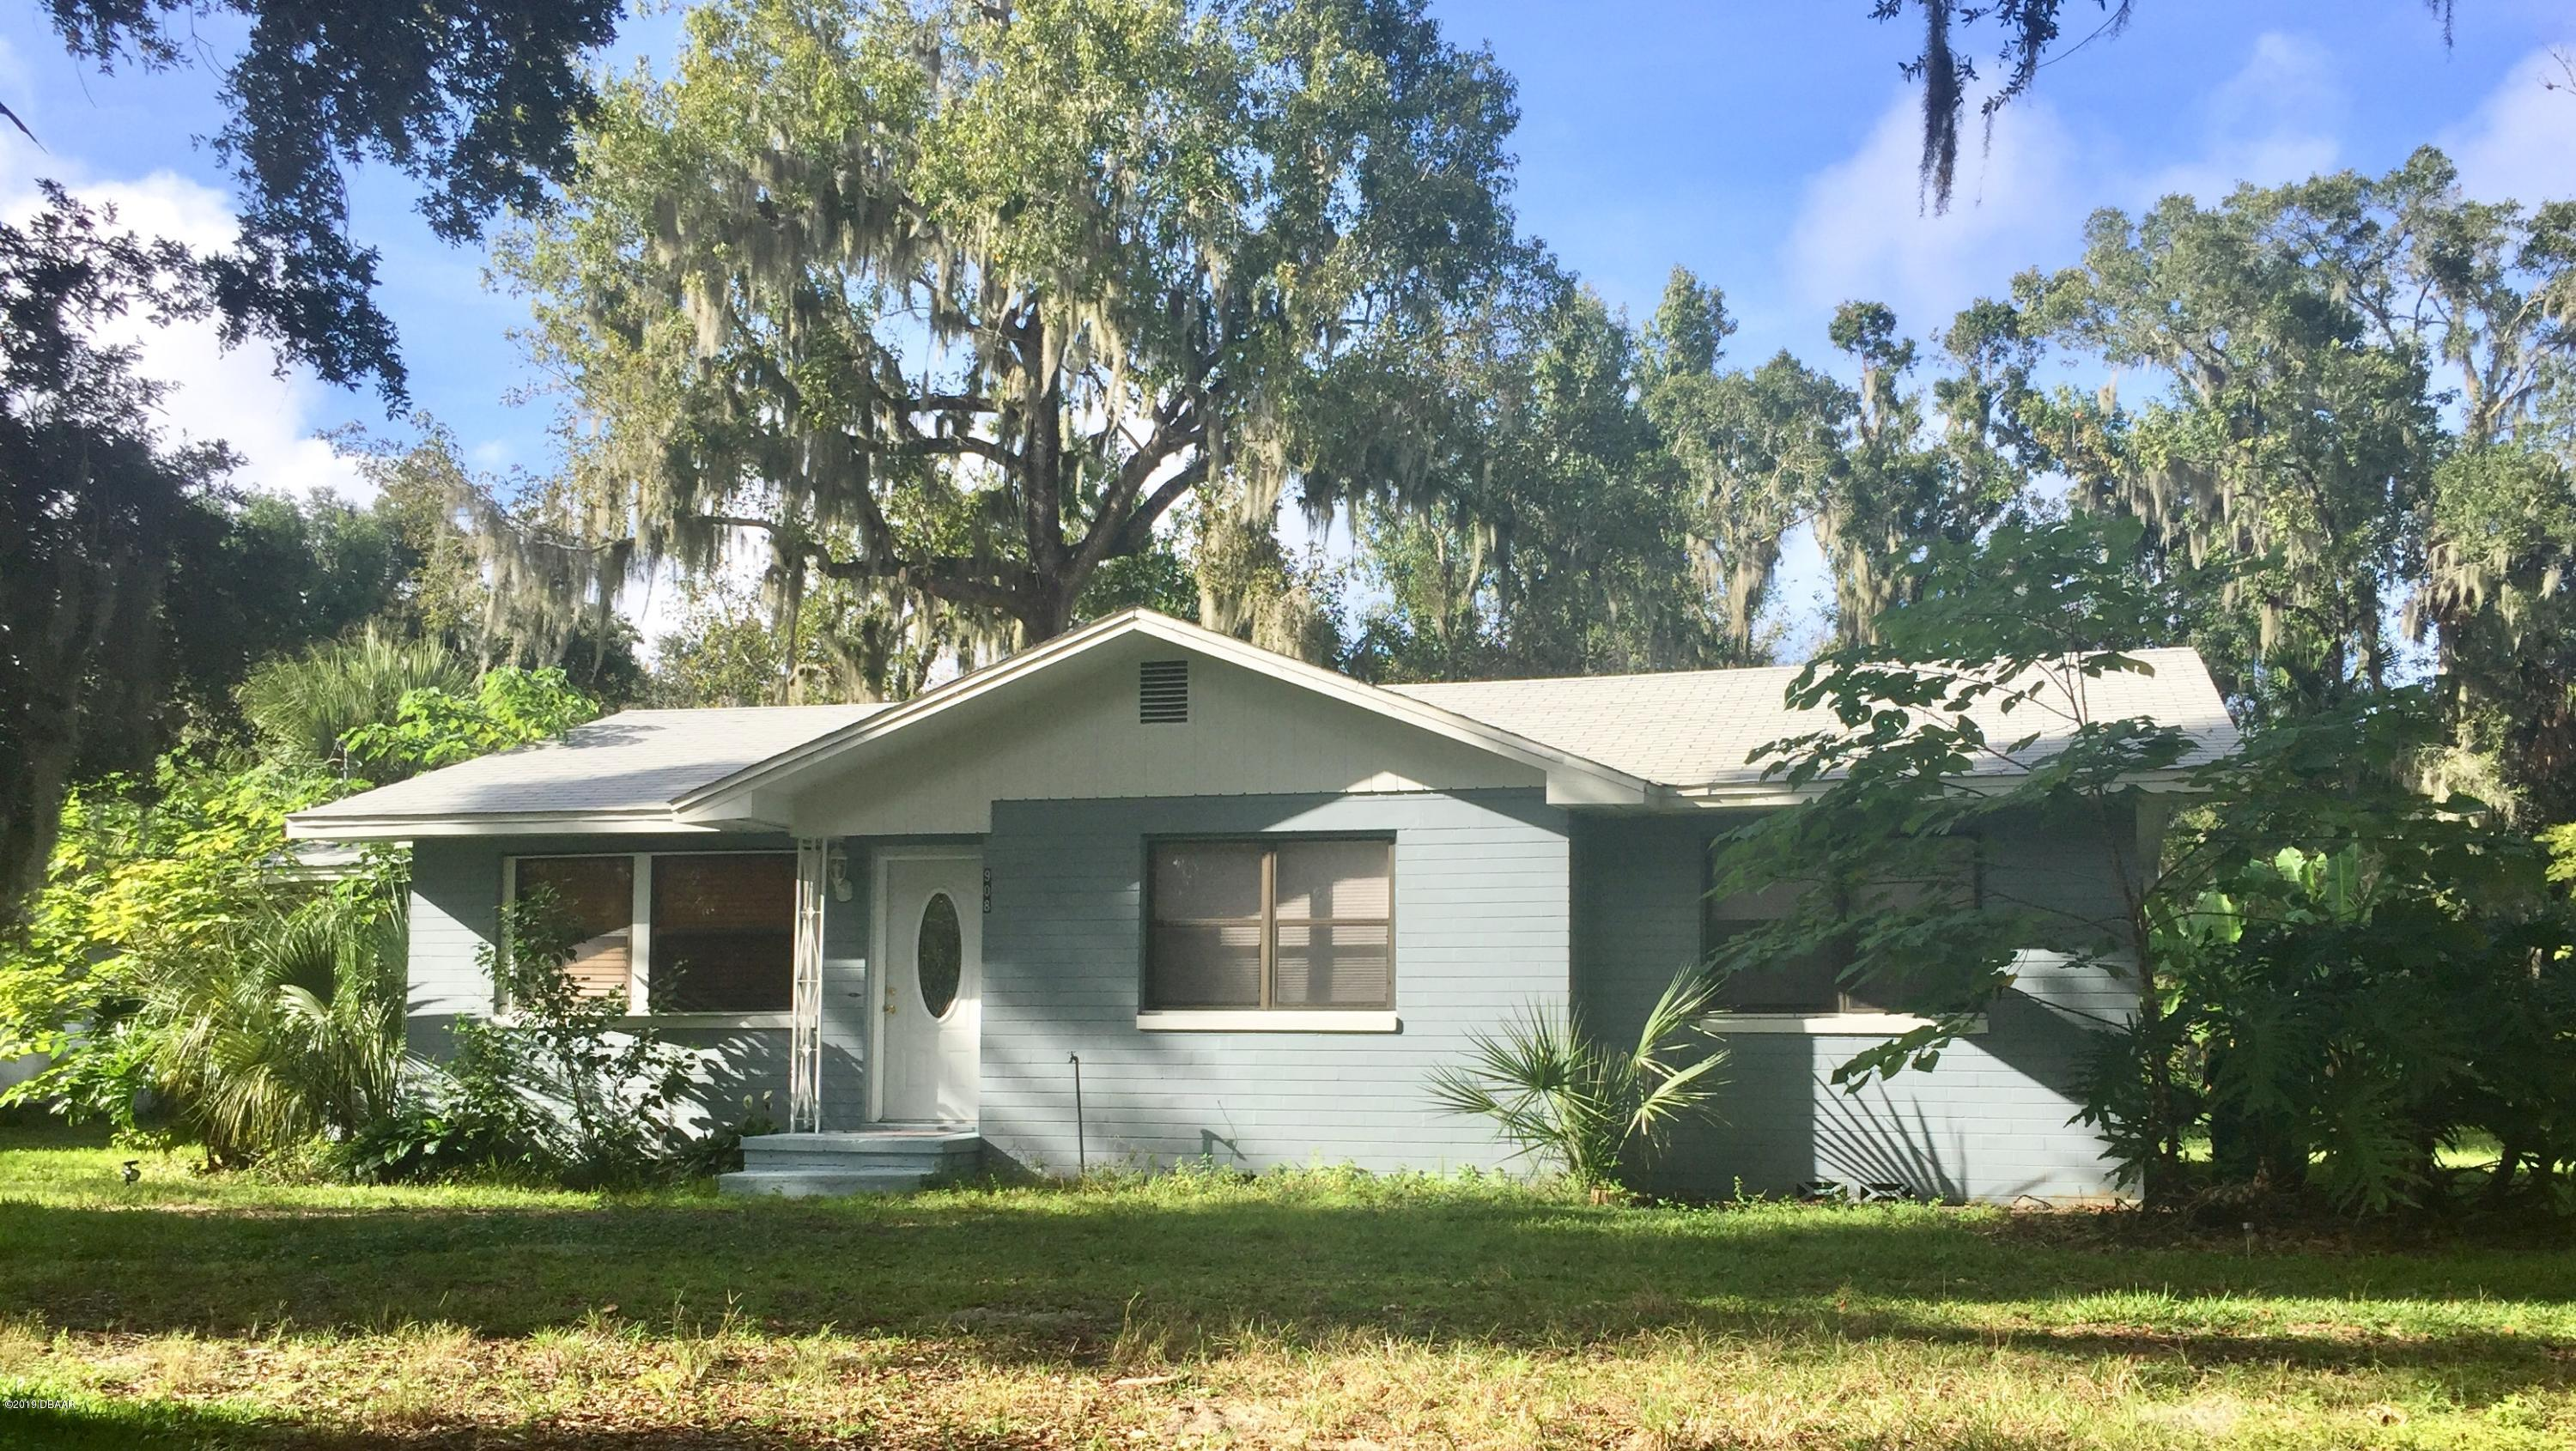 Page 577 of Homes for Sale Central Florida with ERA Grizzard Real Estate